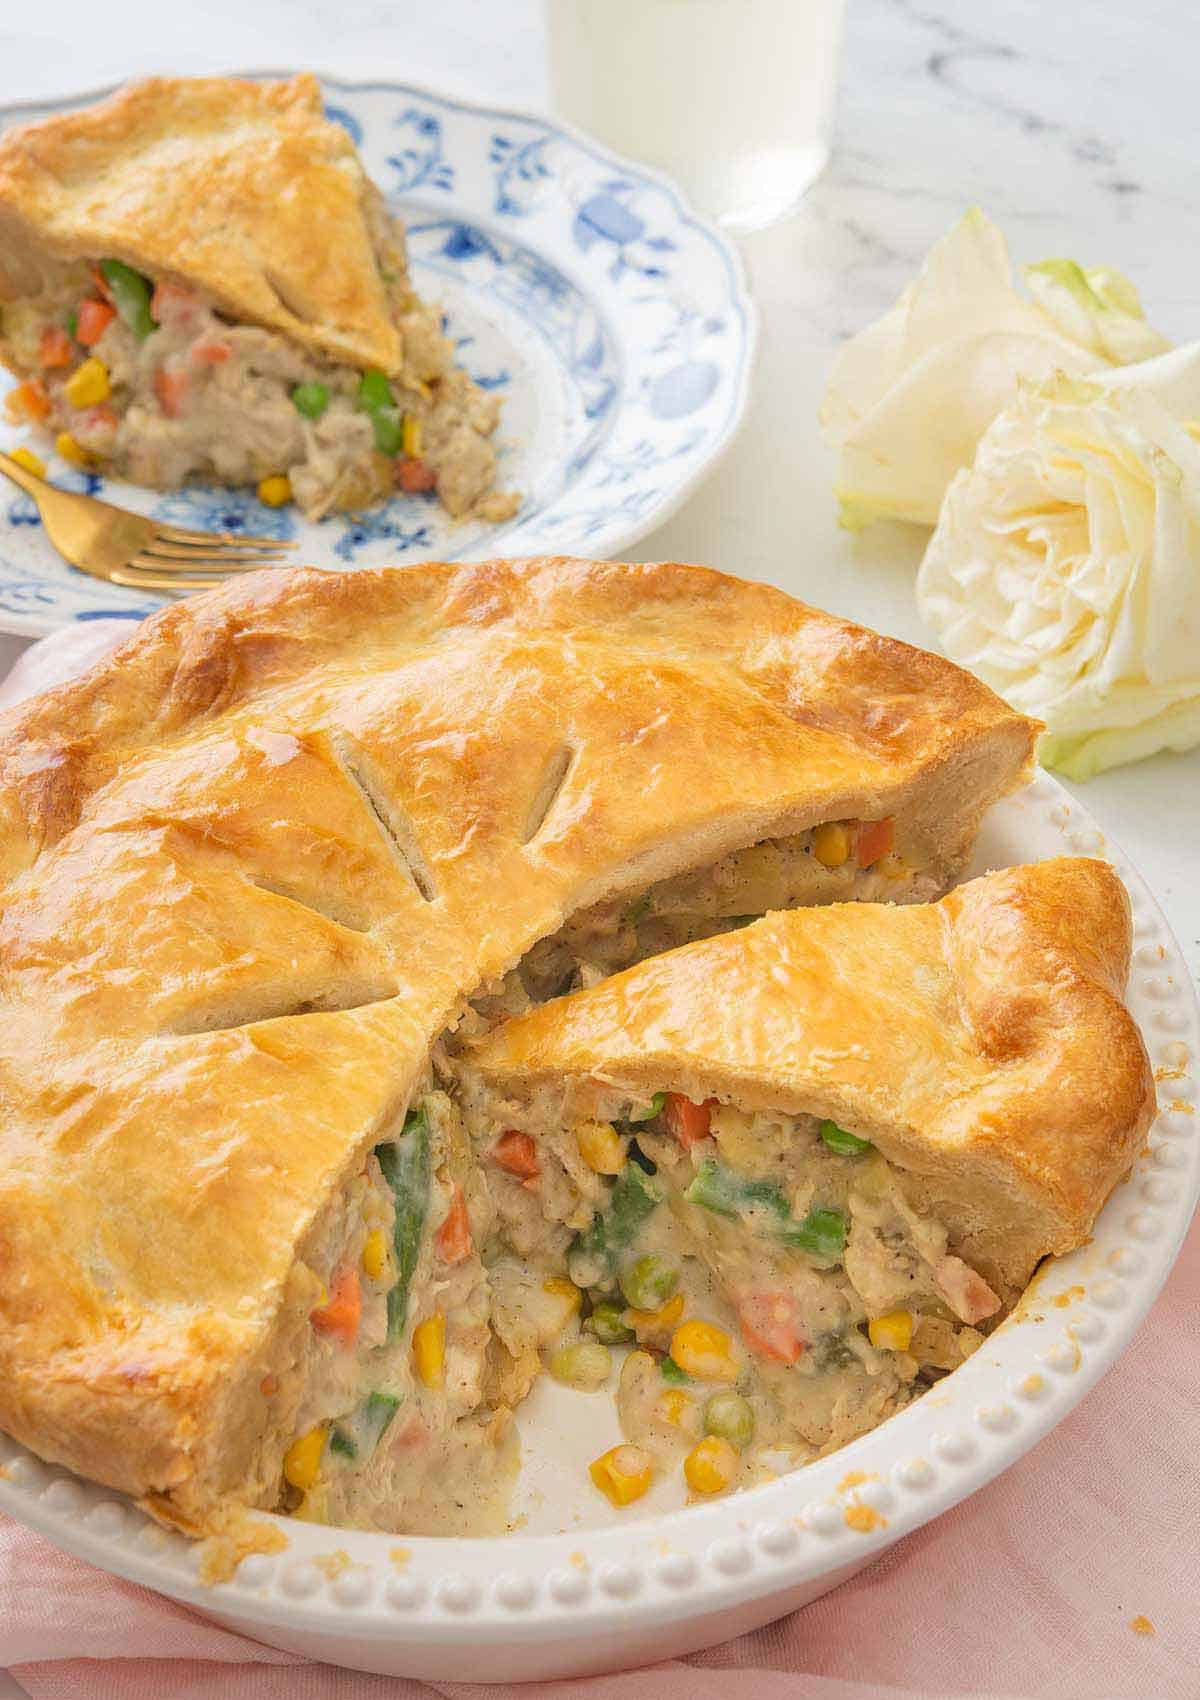 A turkey pot pie, cut opened with a slice removed and placed on a plate behind it.